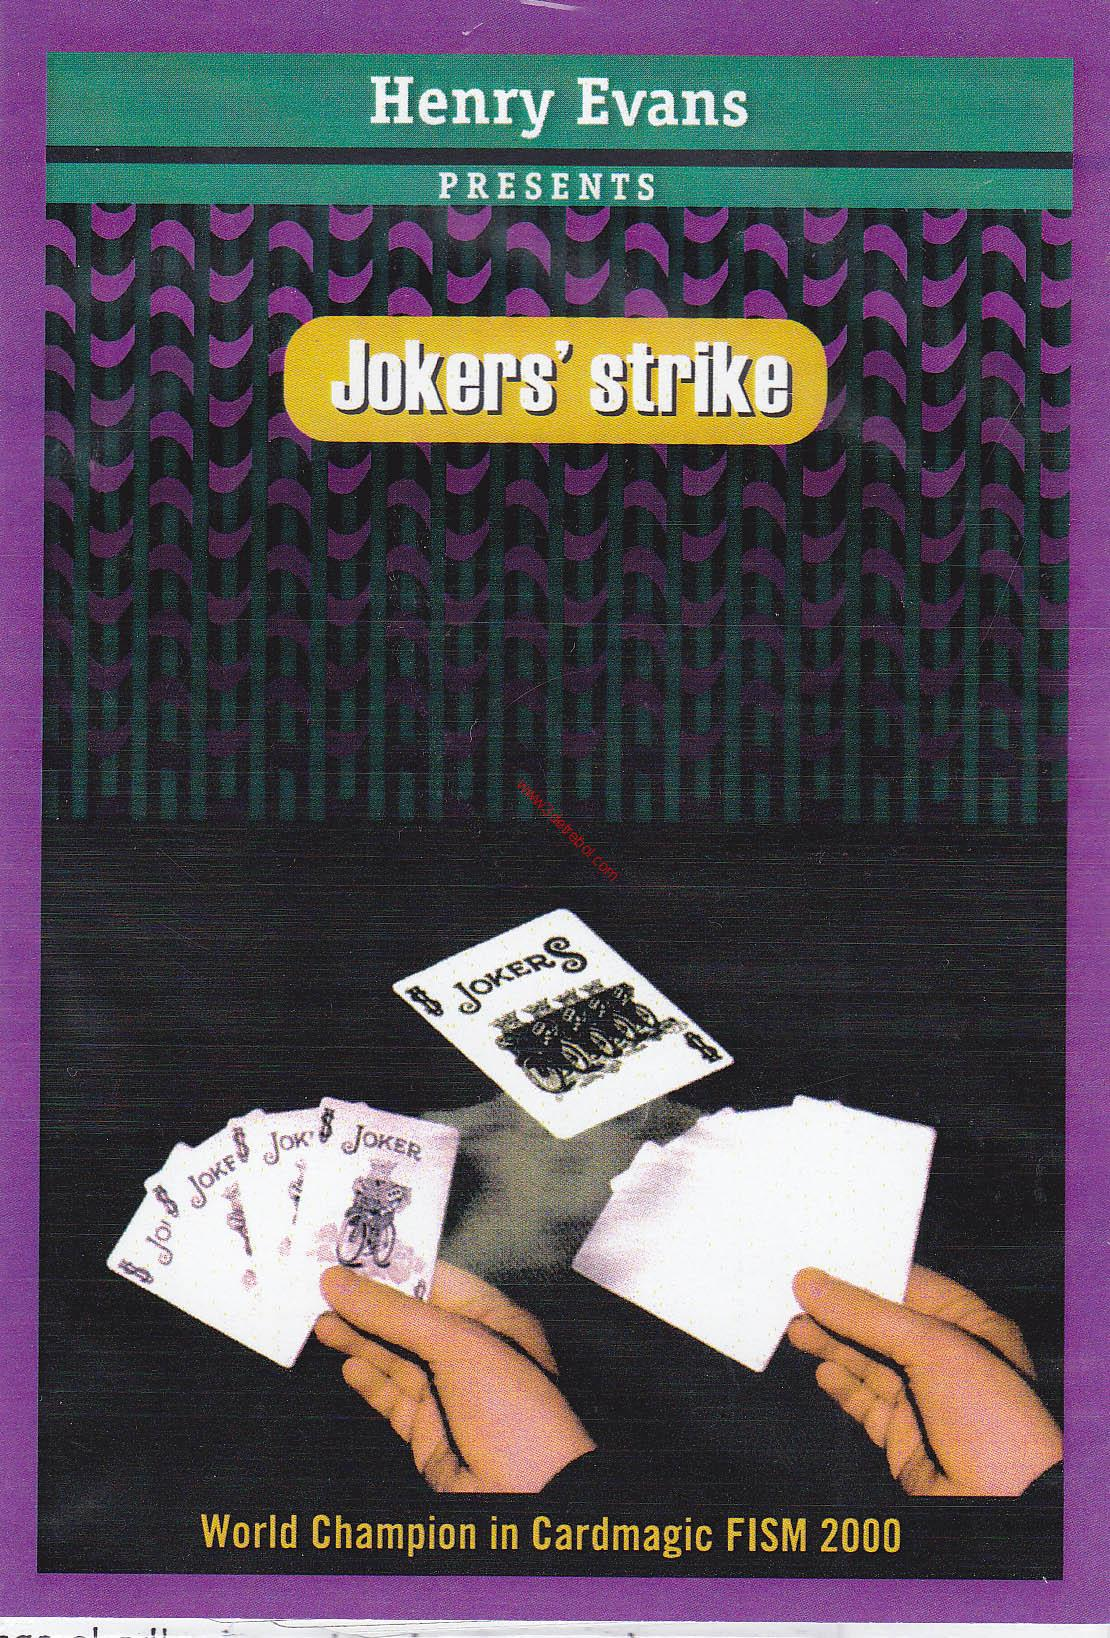 JOKER'S STRIKE